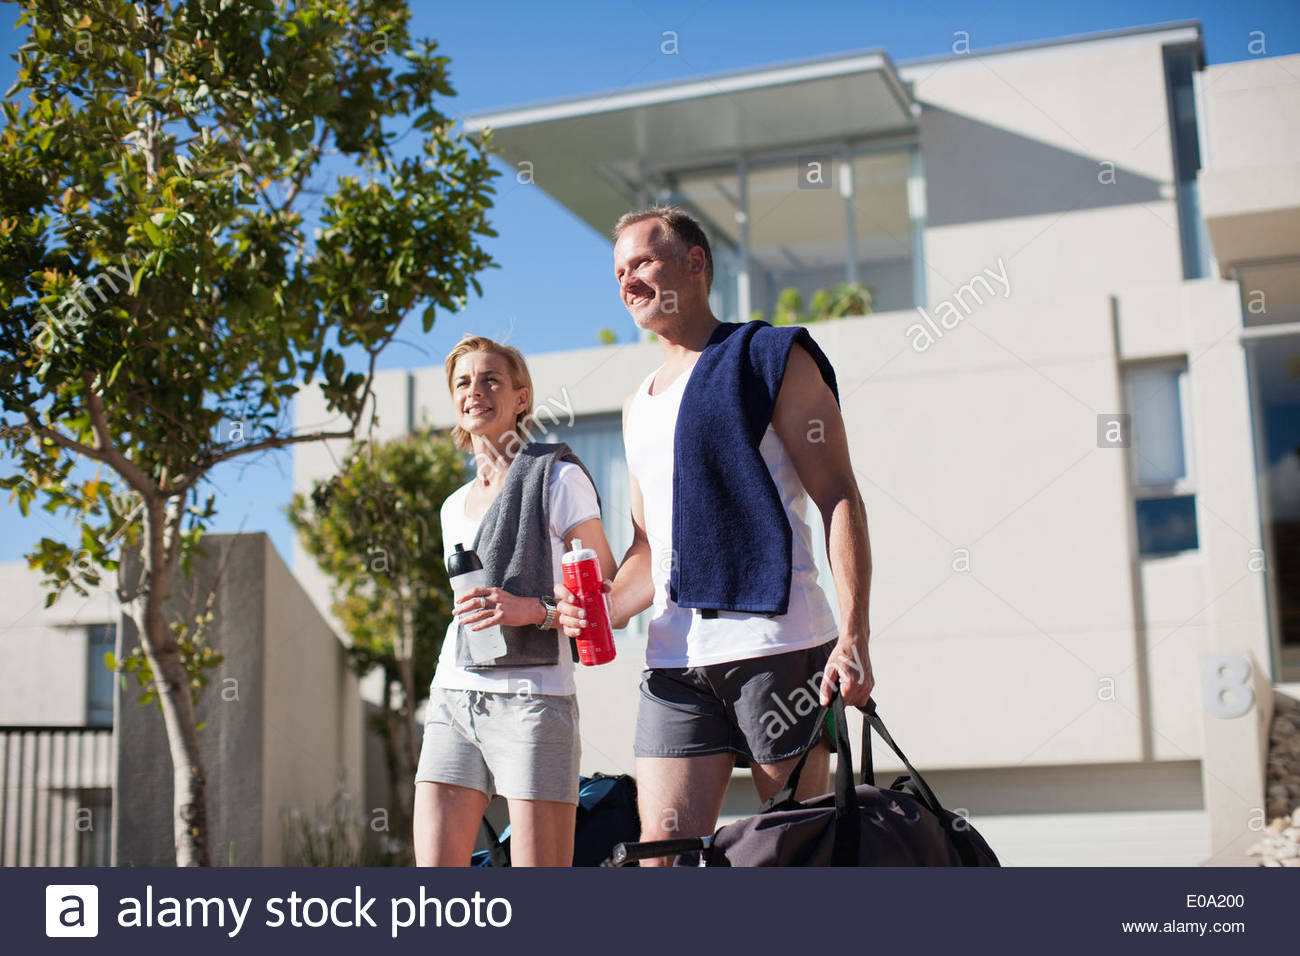 Mature couple in workout clothes - Stock Image